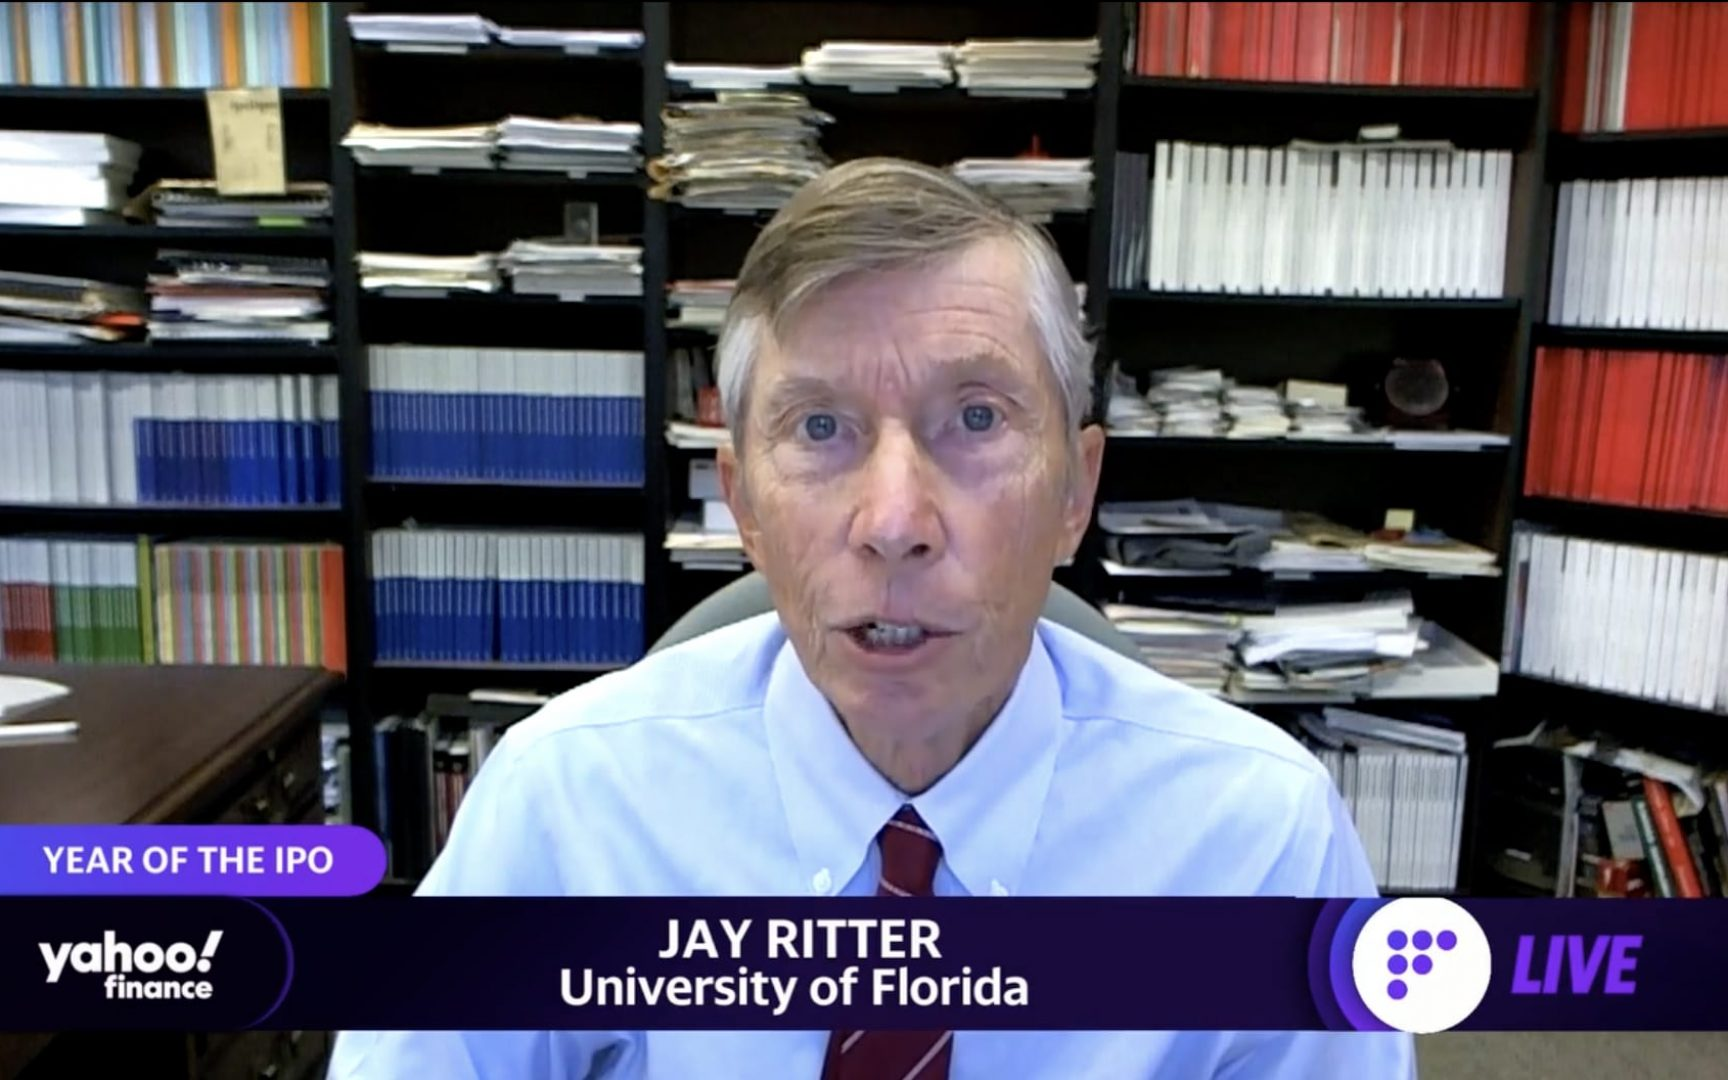 Jay Ritter speaks via Zoom on Yahoo! Finance.